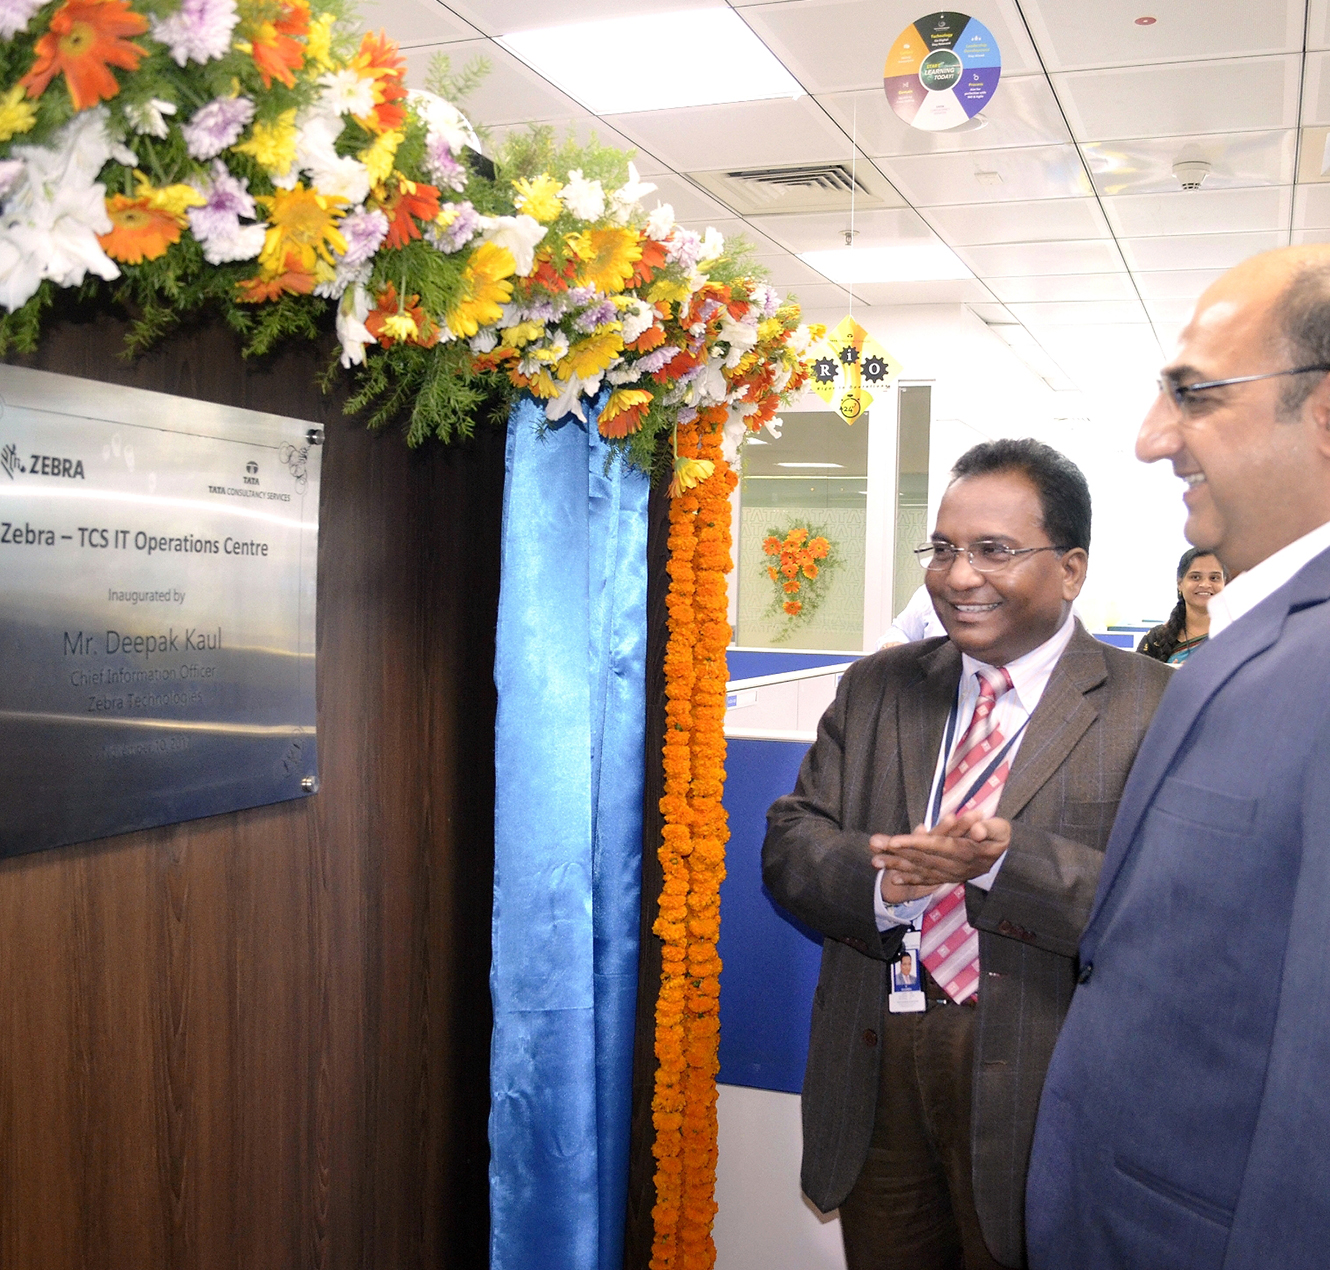 TCS Collaborates with Zebra Technologies on New Global Development Center